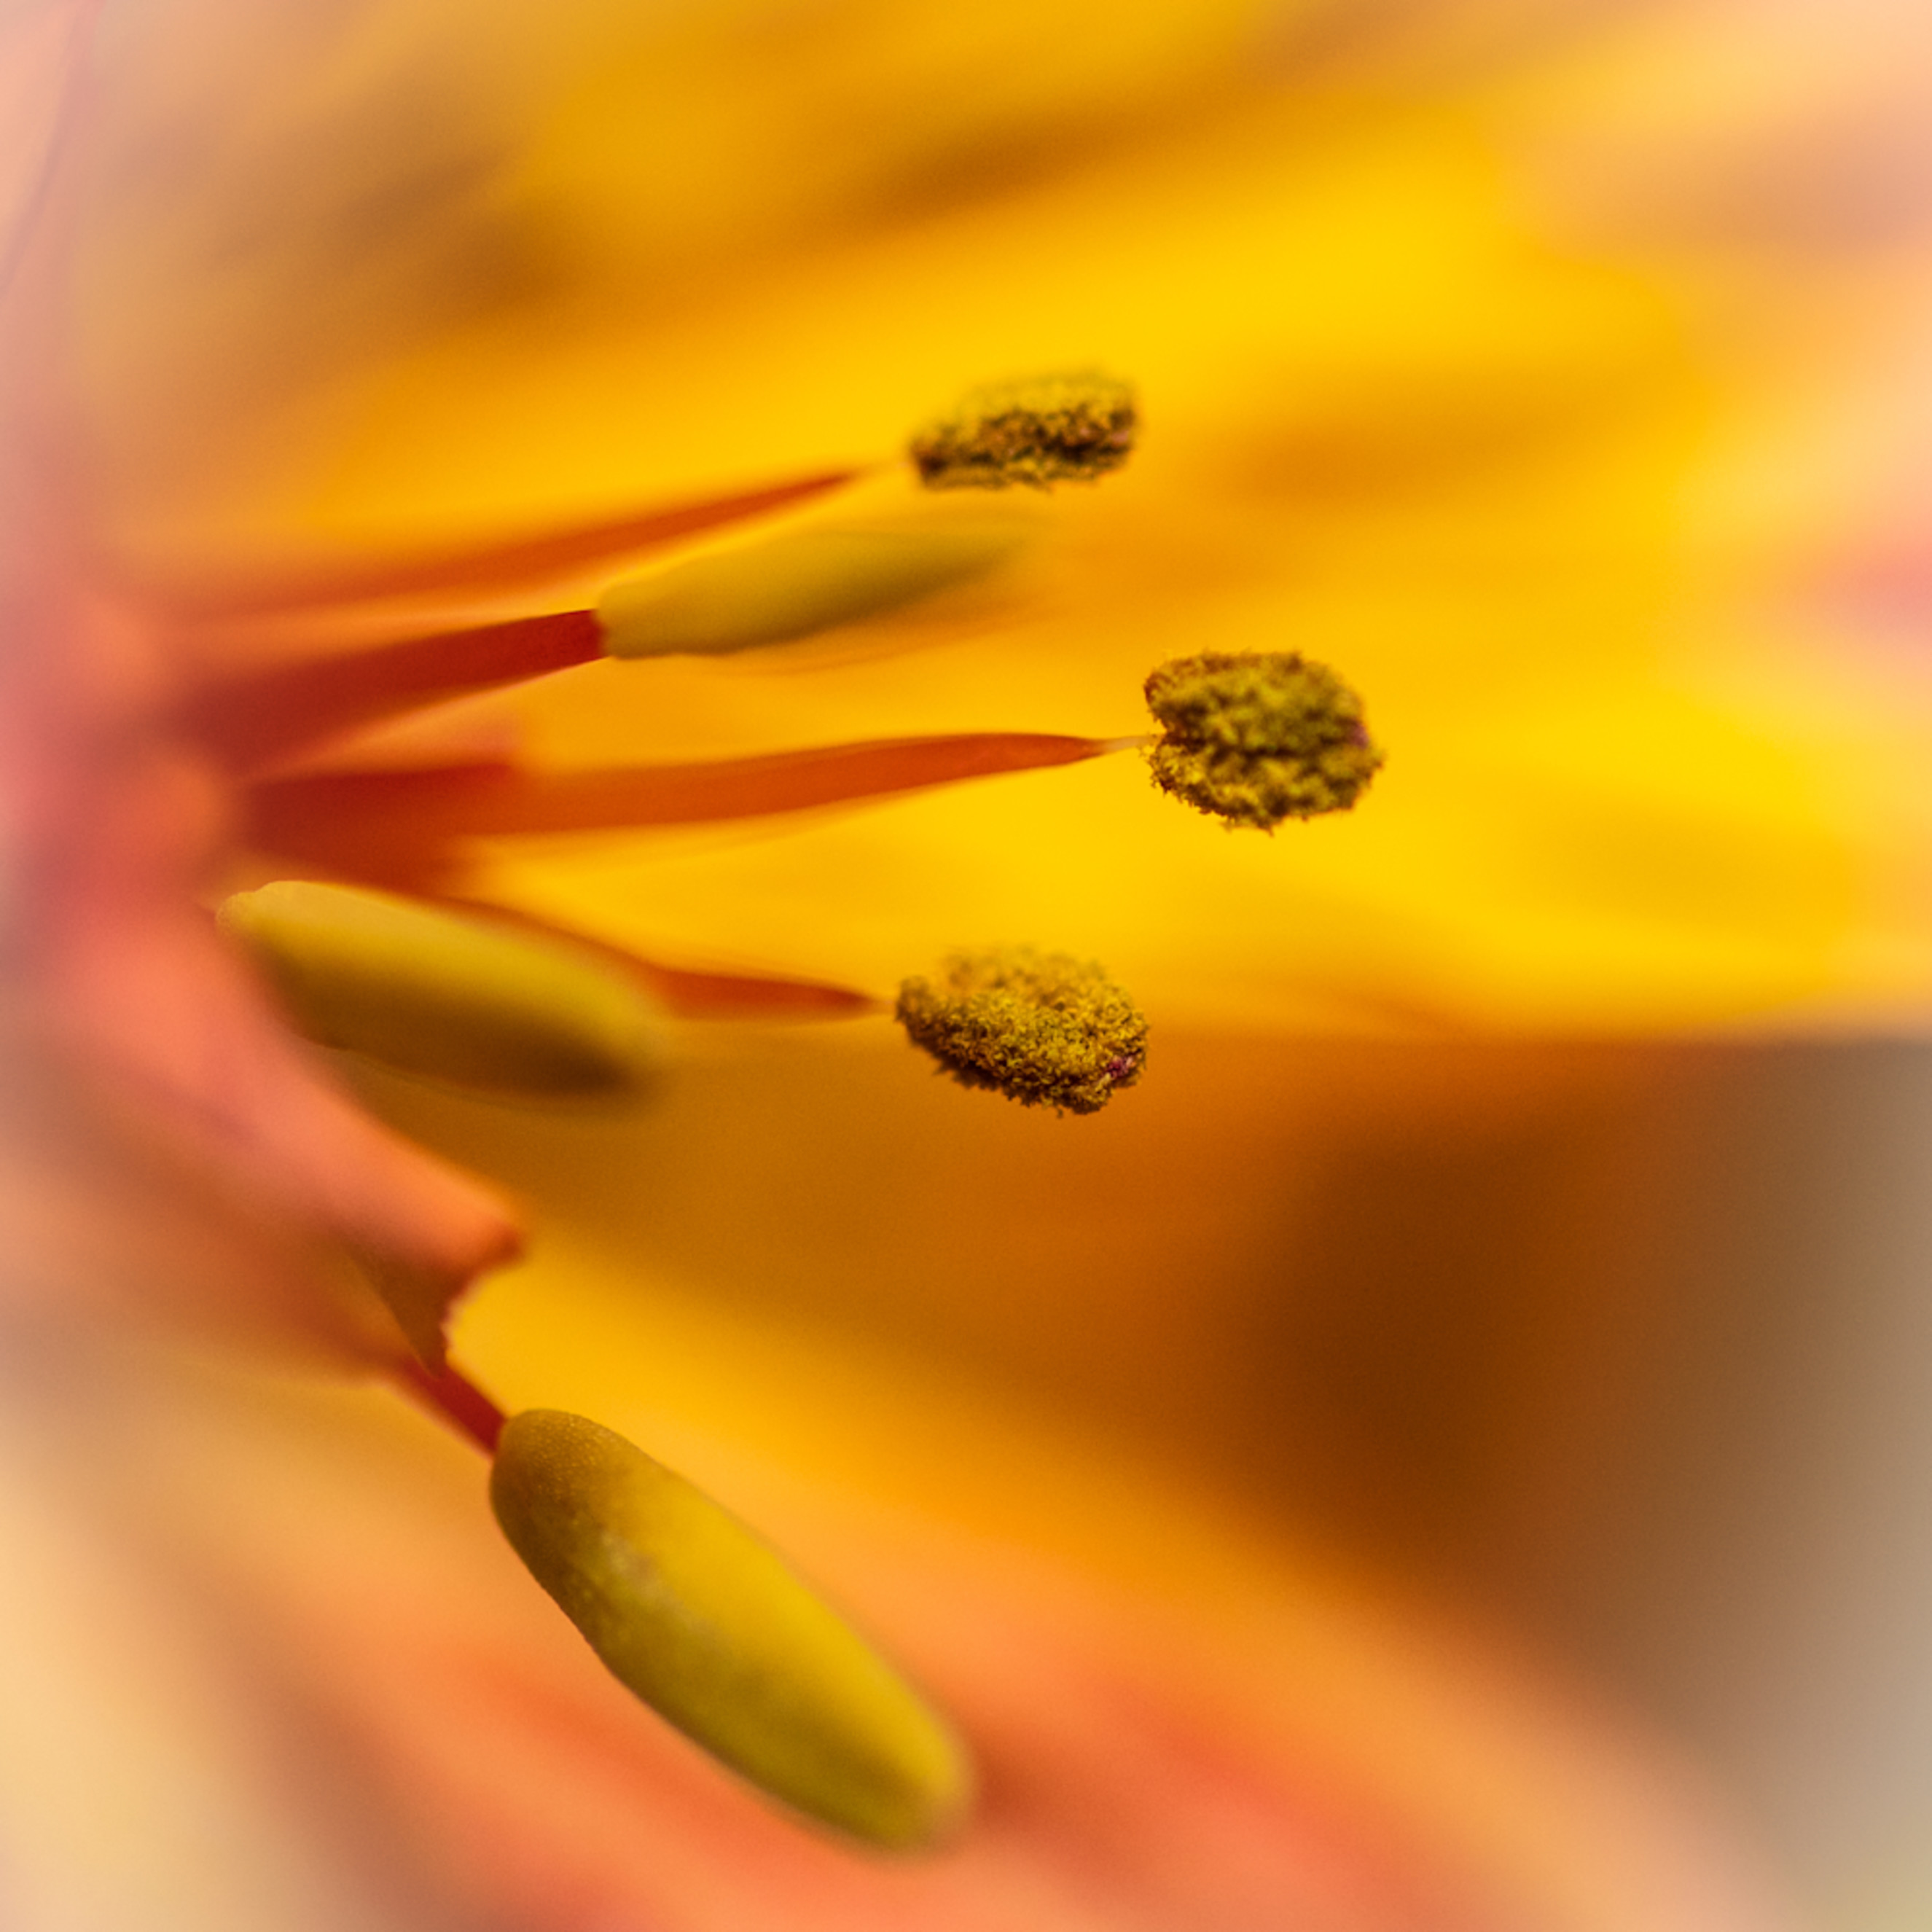 Yellow and orange macro of flower stamen tzc0op